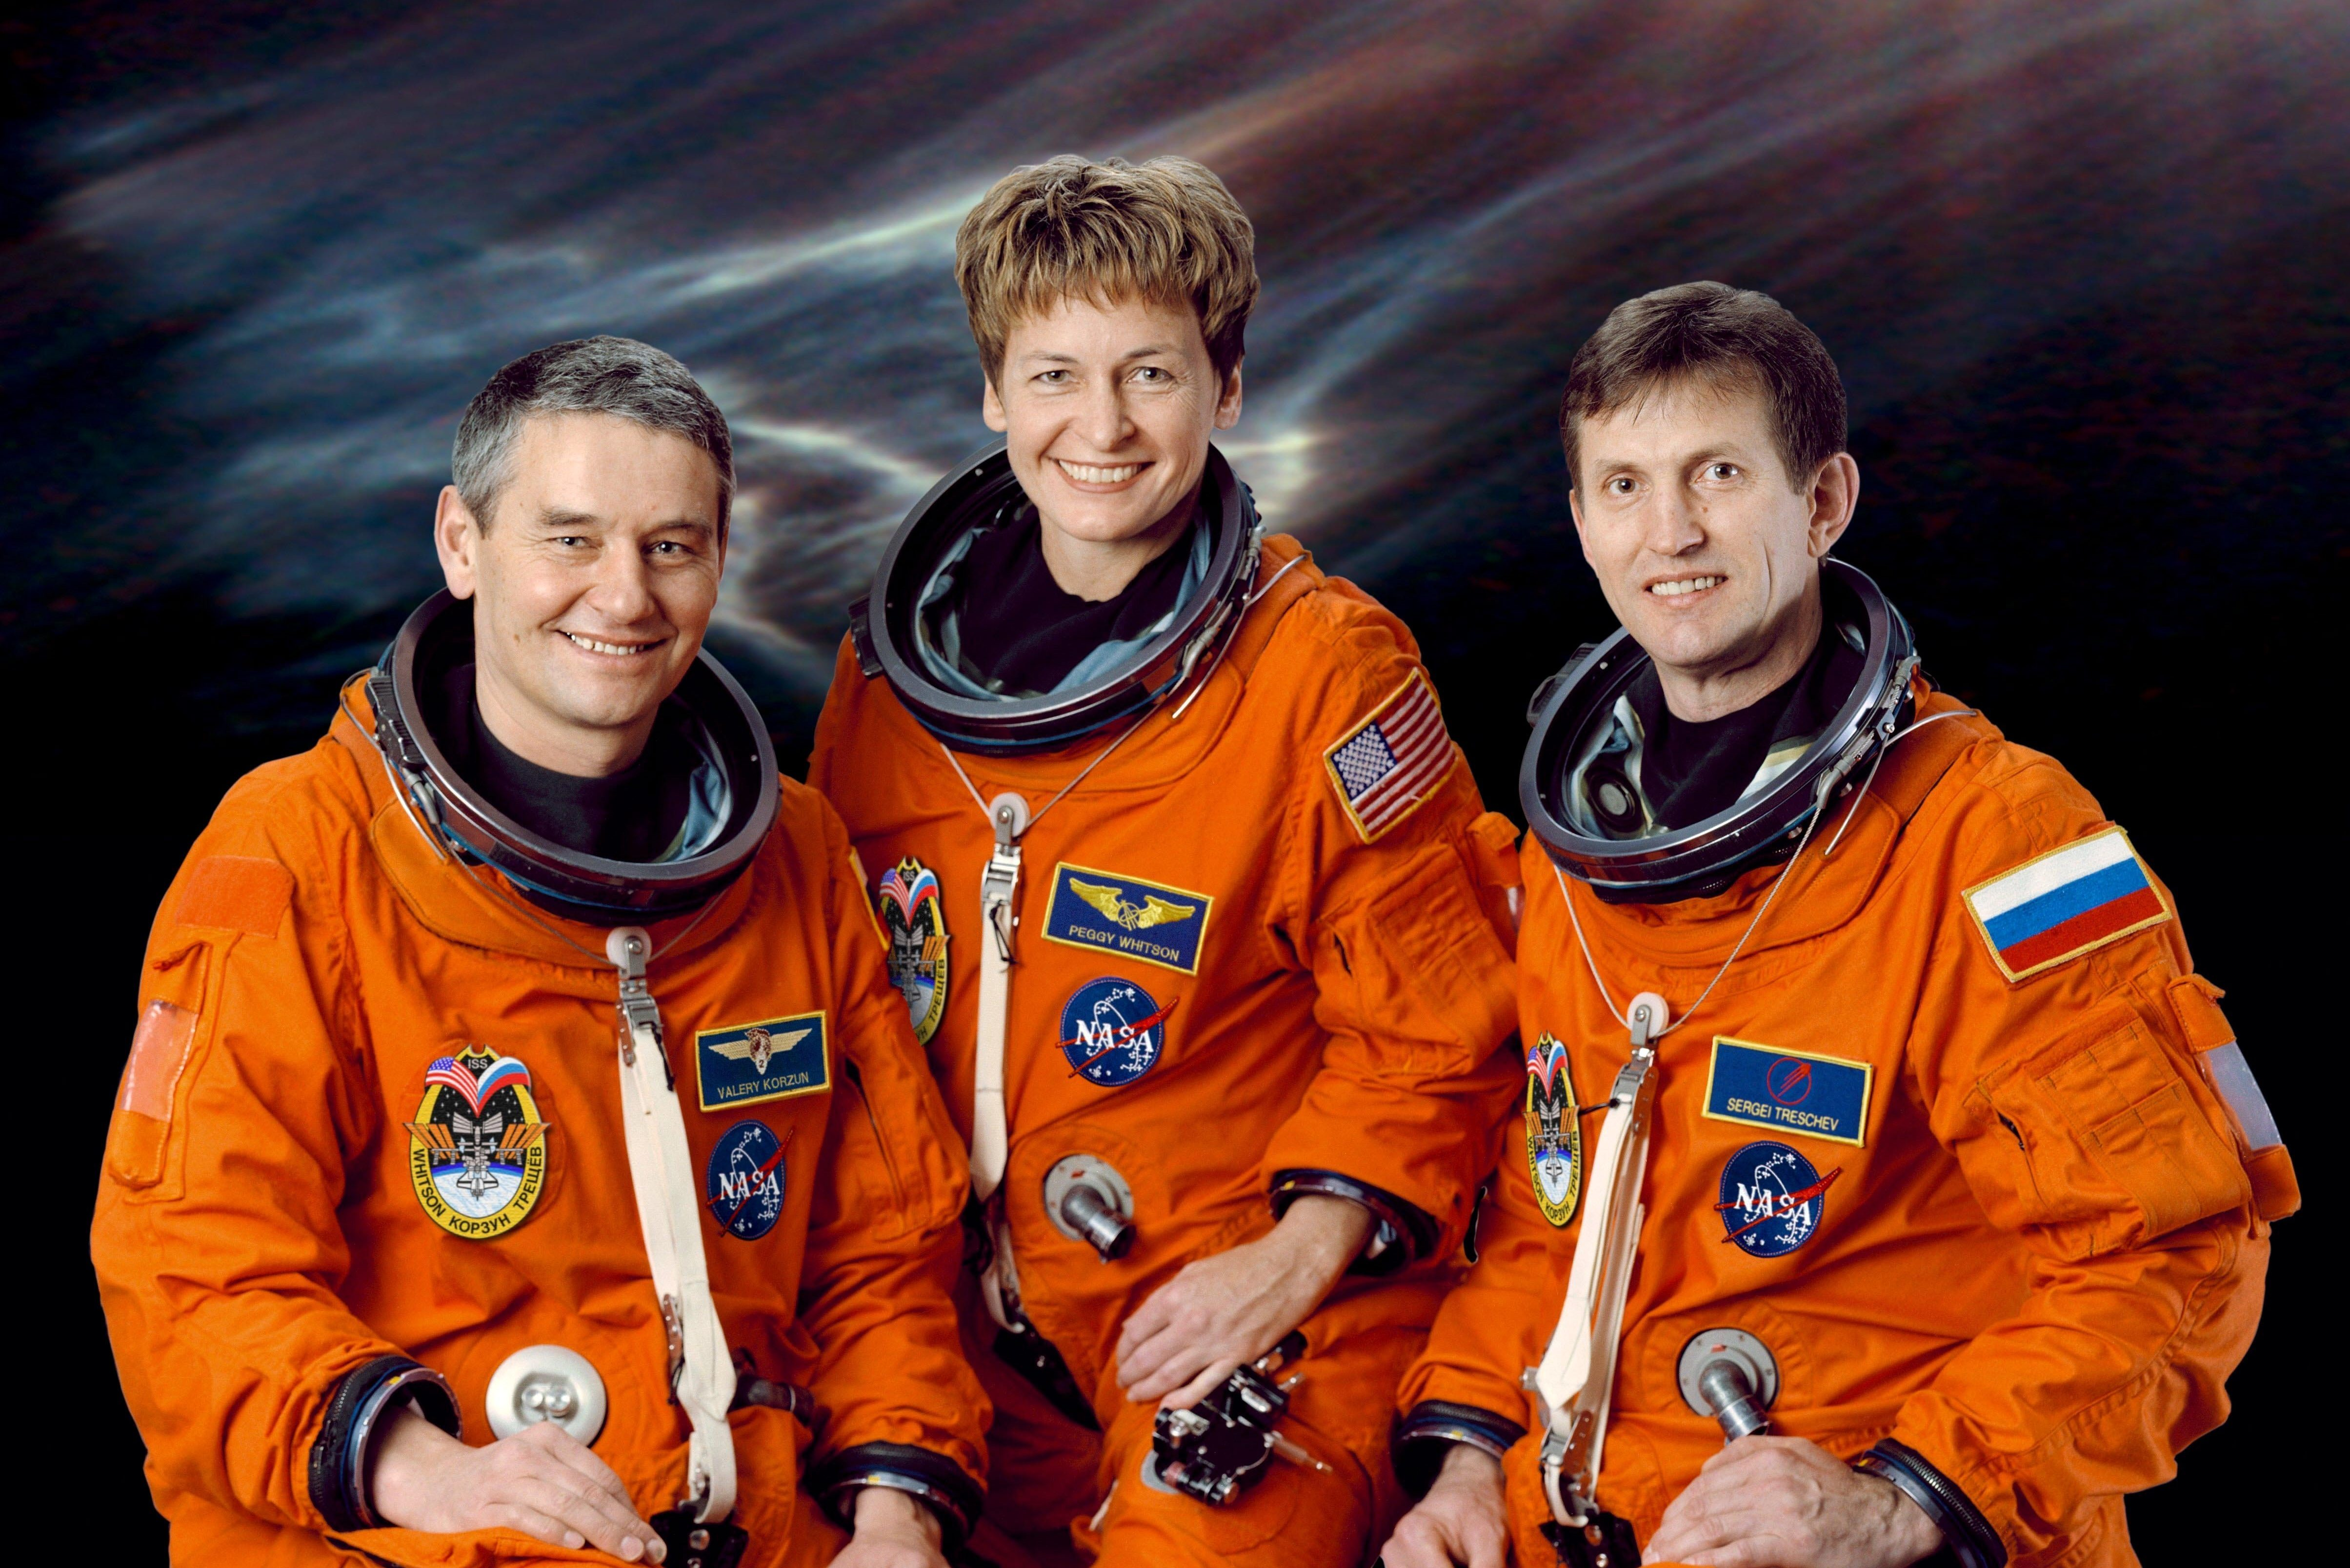 Mandatory Credit: Photo by Shutterstock (380733b) Cosmonaut Valeri G. Korzun (left), Expedition Five mission commander; astronaut Peggy A. Whitson and cosmonaut Sergei Y. Treschev, both flight engineers, attired in training versions of the shuttle launch and entry suits. VARIOUS ASTRONAUTS FROM ISS EXPEDITION 5, AMERICA - 28 NOV 2001